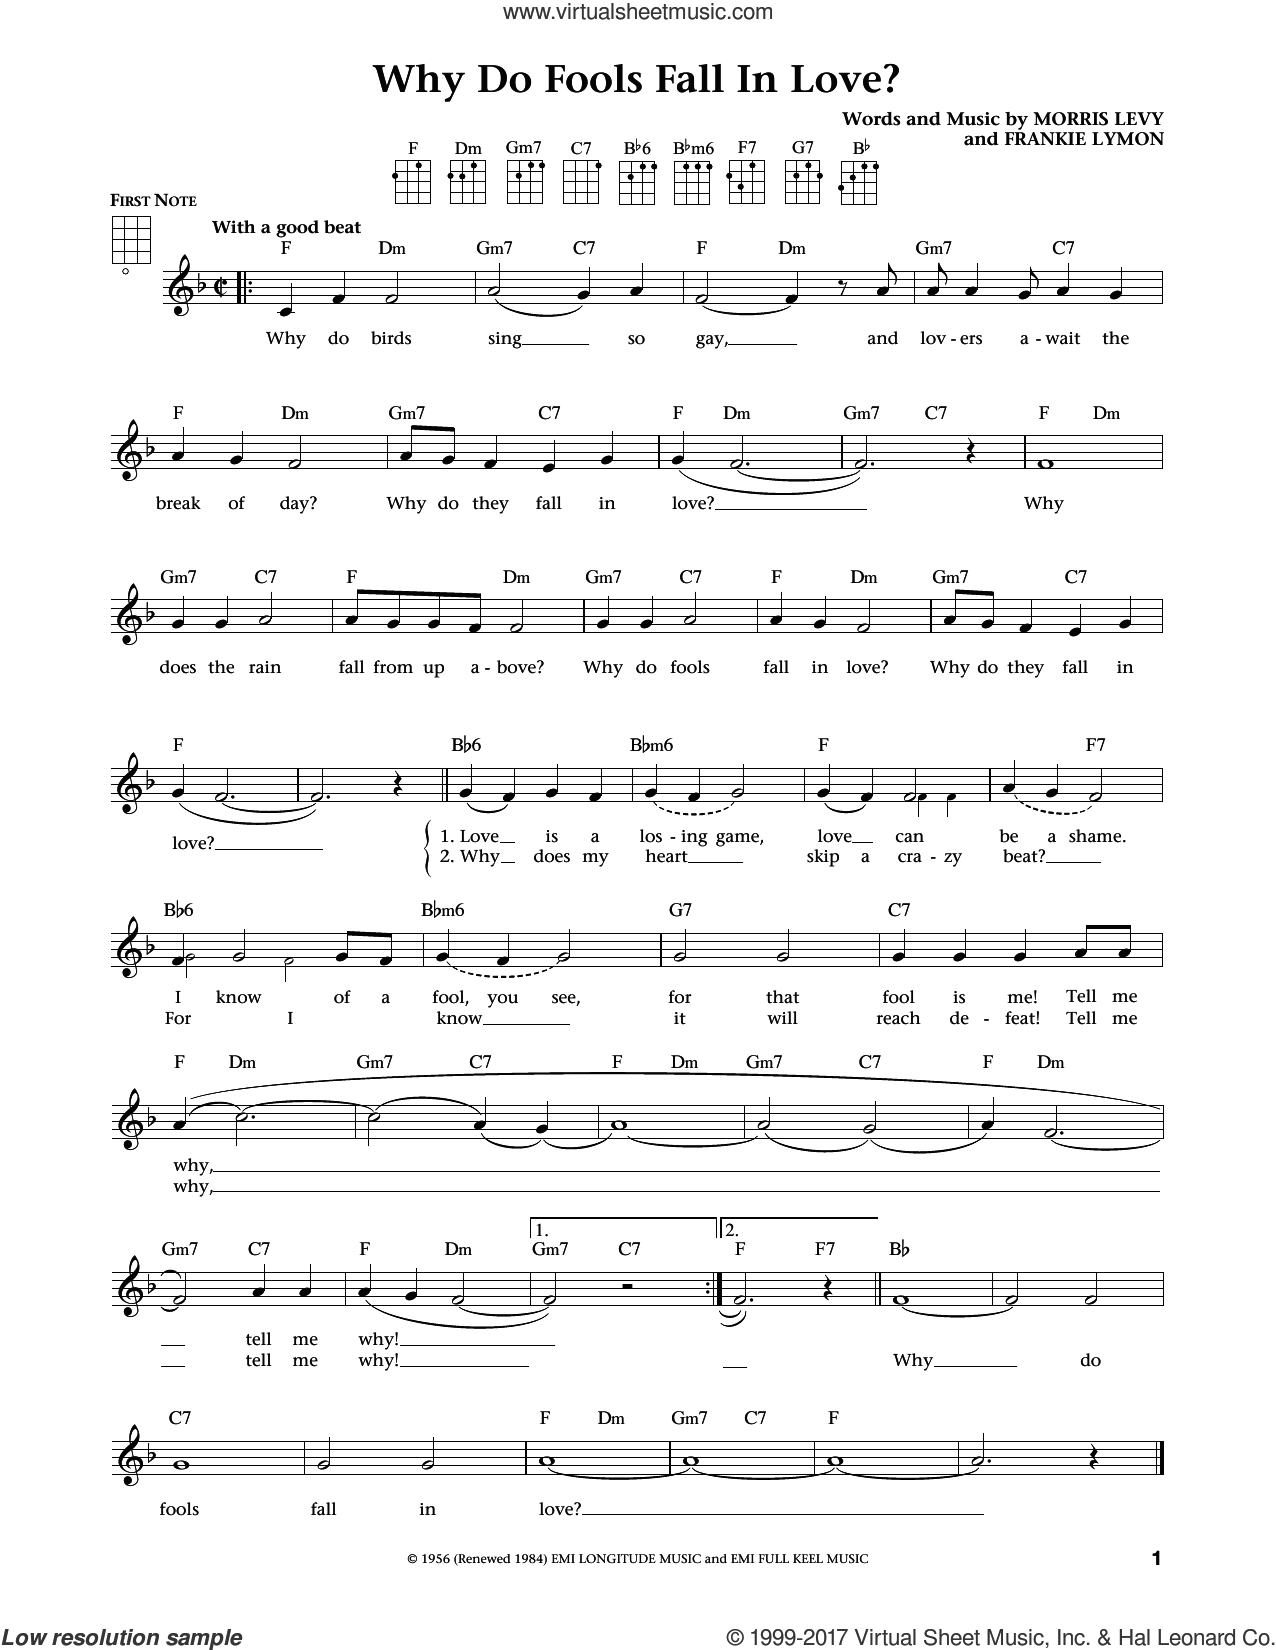 Why Do Fools Fall In Love sheet music for ukulele by Frankie Lymon & The Teenagers, Jim Beloff, Liz Beloff, Frankie Lymon and Morris Levy, intermediate skill level